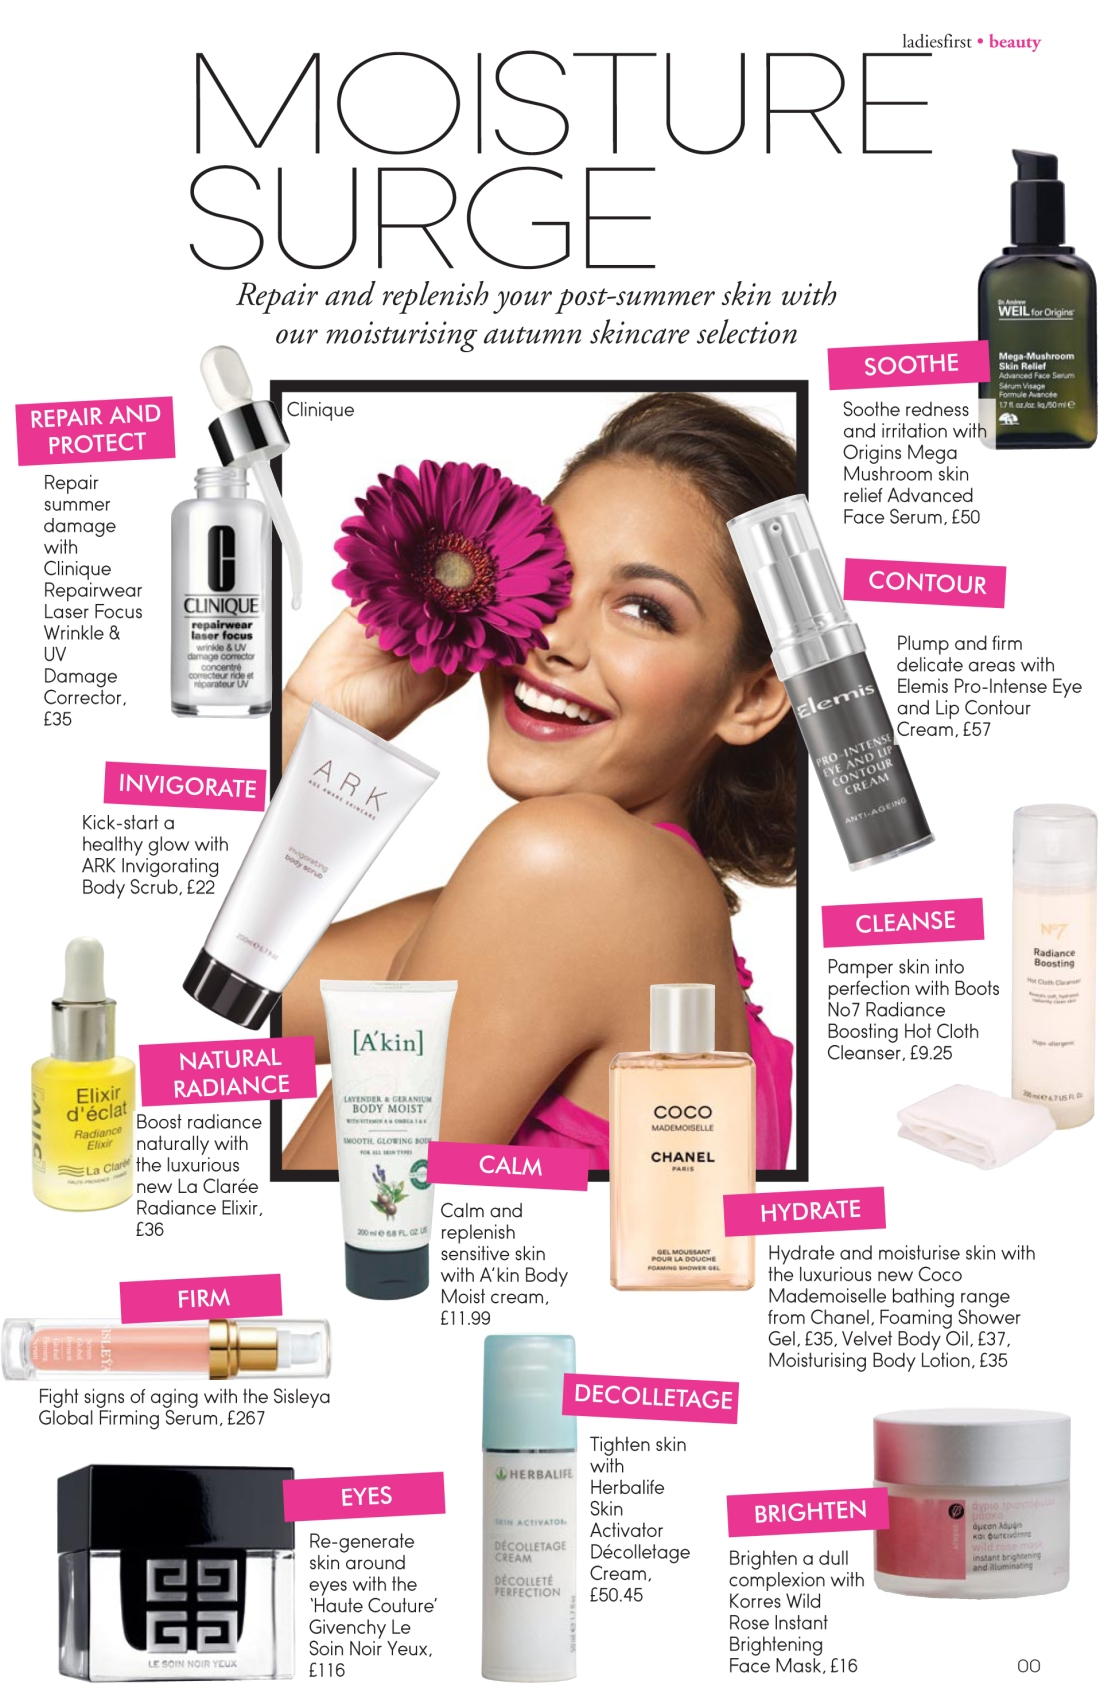 Moisture Surge post-summer skin repair feature- Ladies First Autumn 2010 issue-Amy Lewis